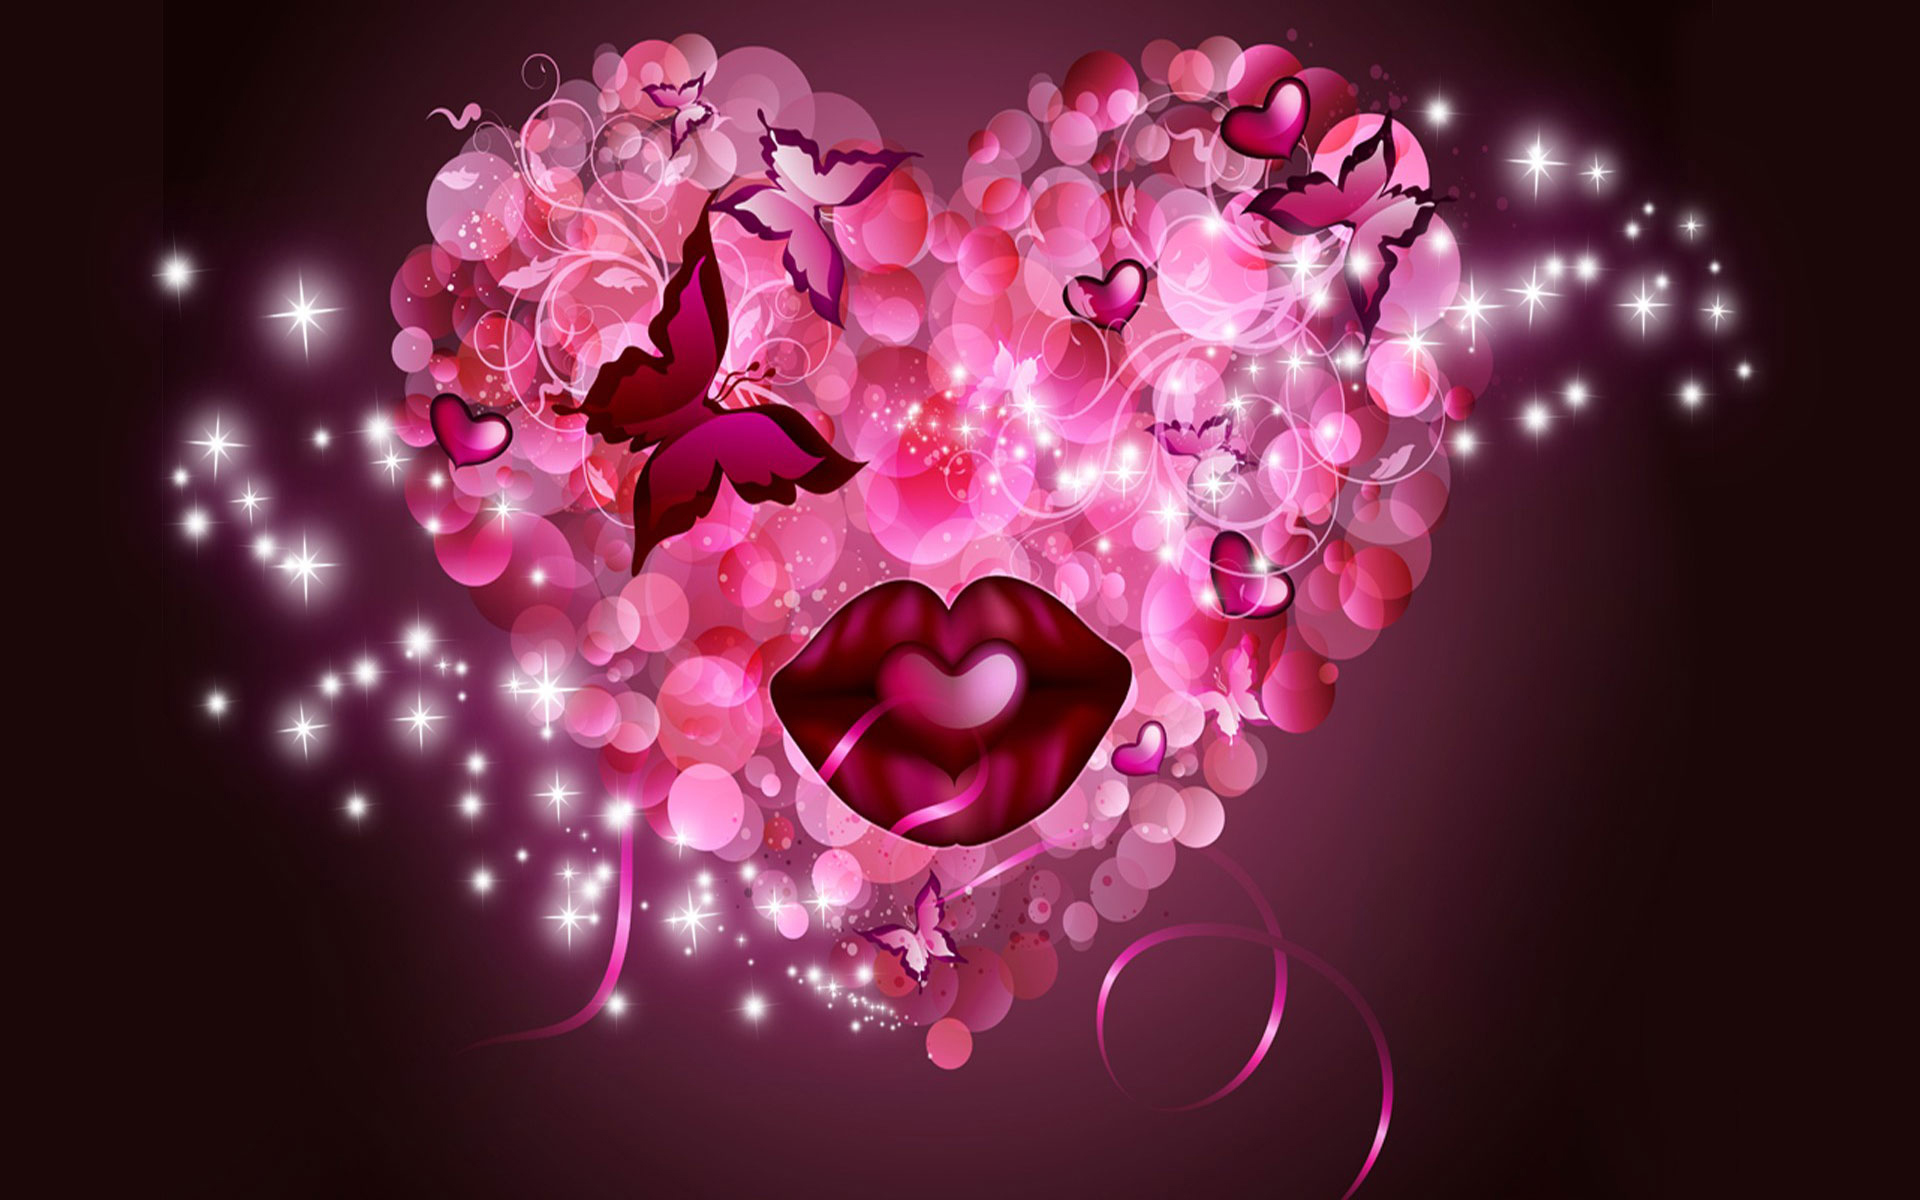 Cute love heart wallpaper hd free pink heart wallpapers pink heart hd wide wallpaper voltagebd Images